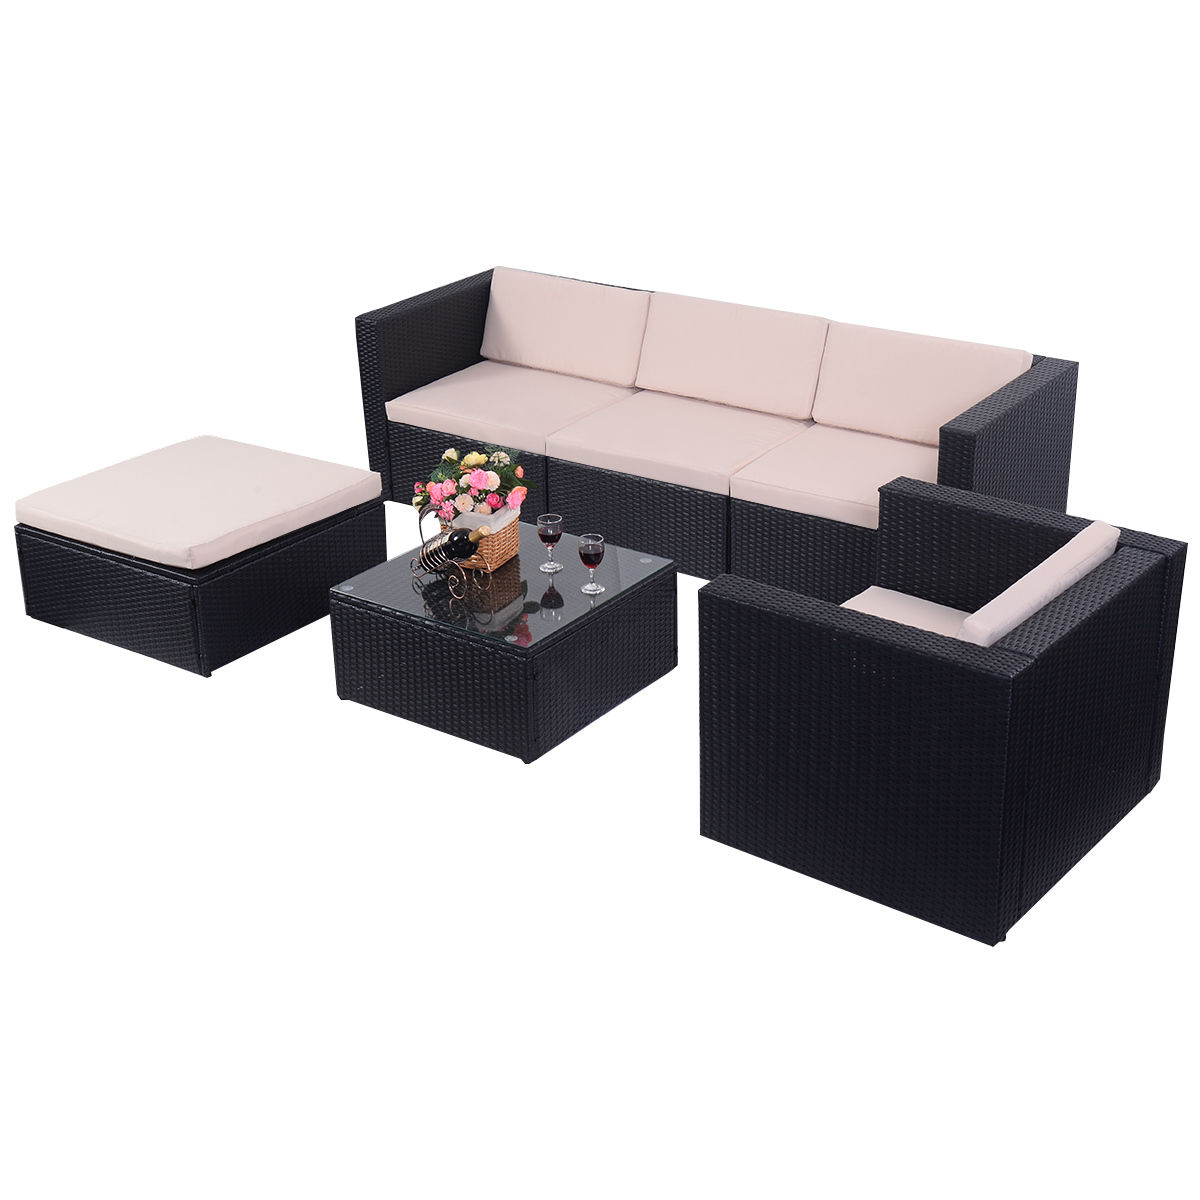 Costway 6 PCS Outdoor Patio Rattan Wicker Sectional Furniture Set